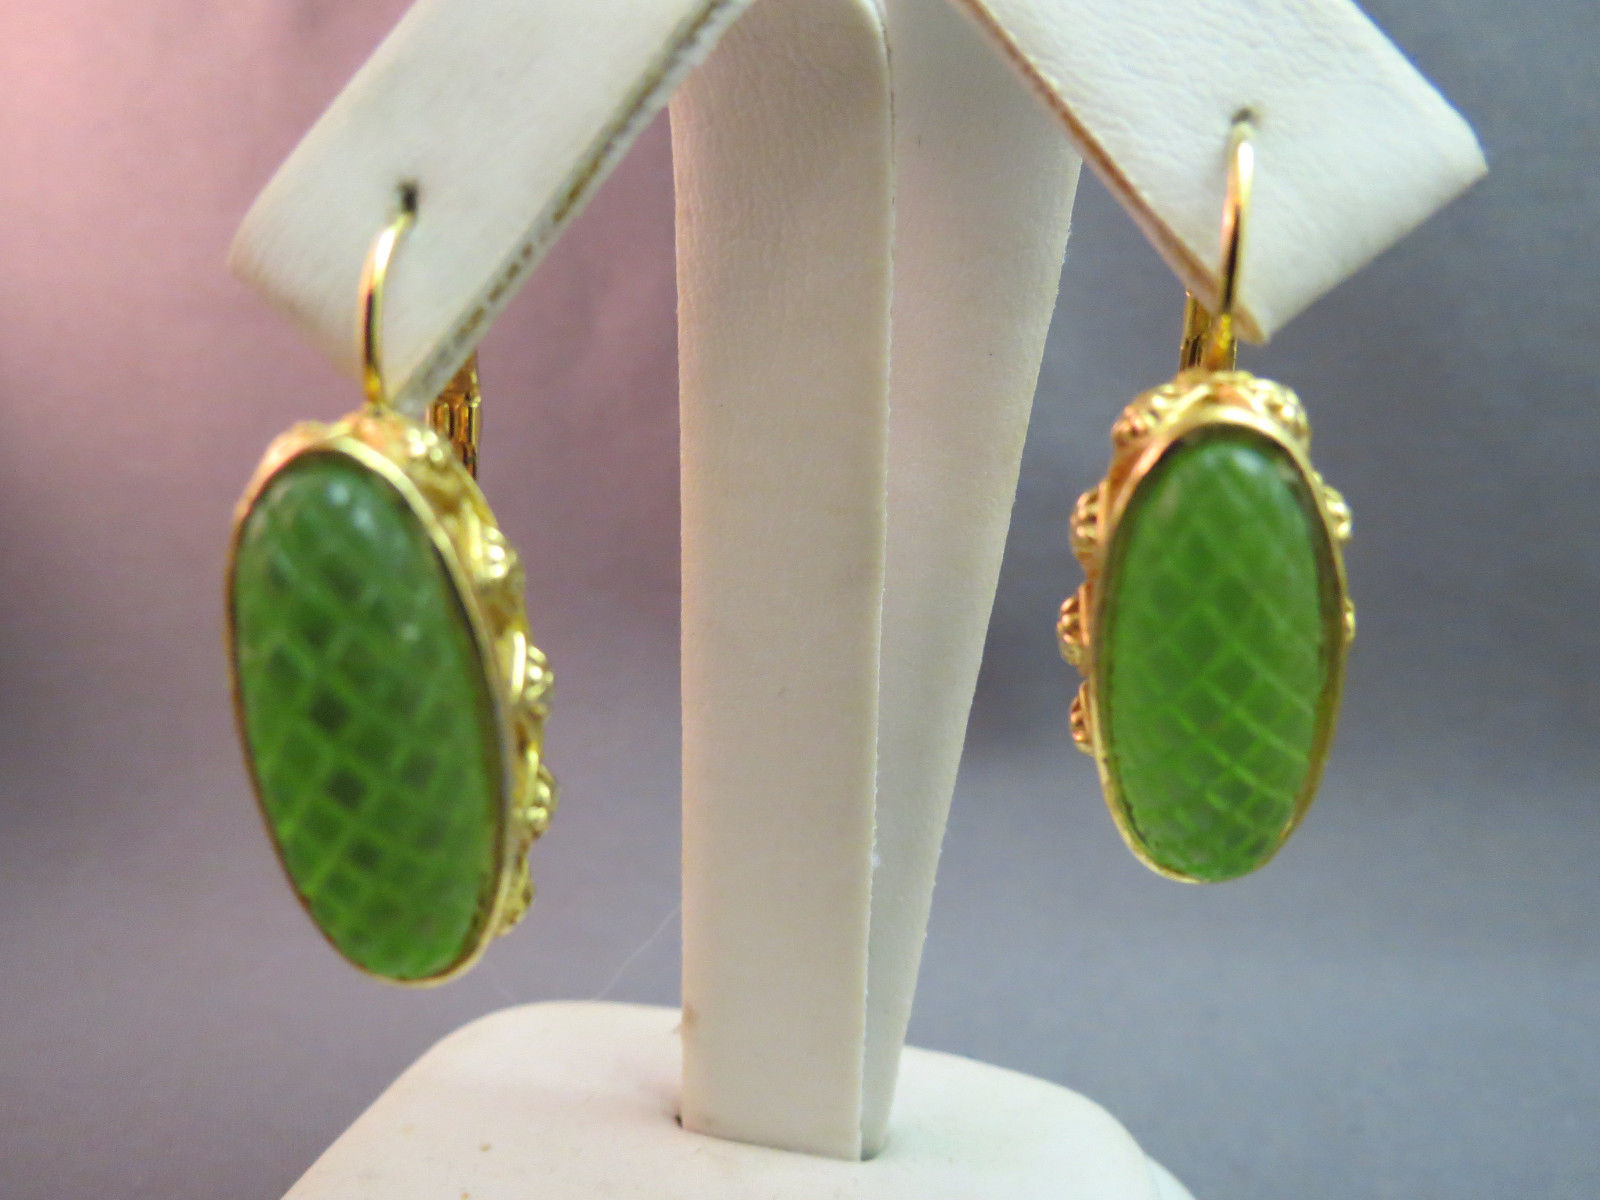 Primary image for Earrings Leverback Dangle Lime Green Resin Stones Brilliant Gold Plated Textured